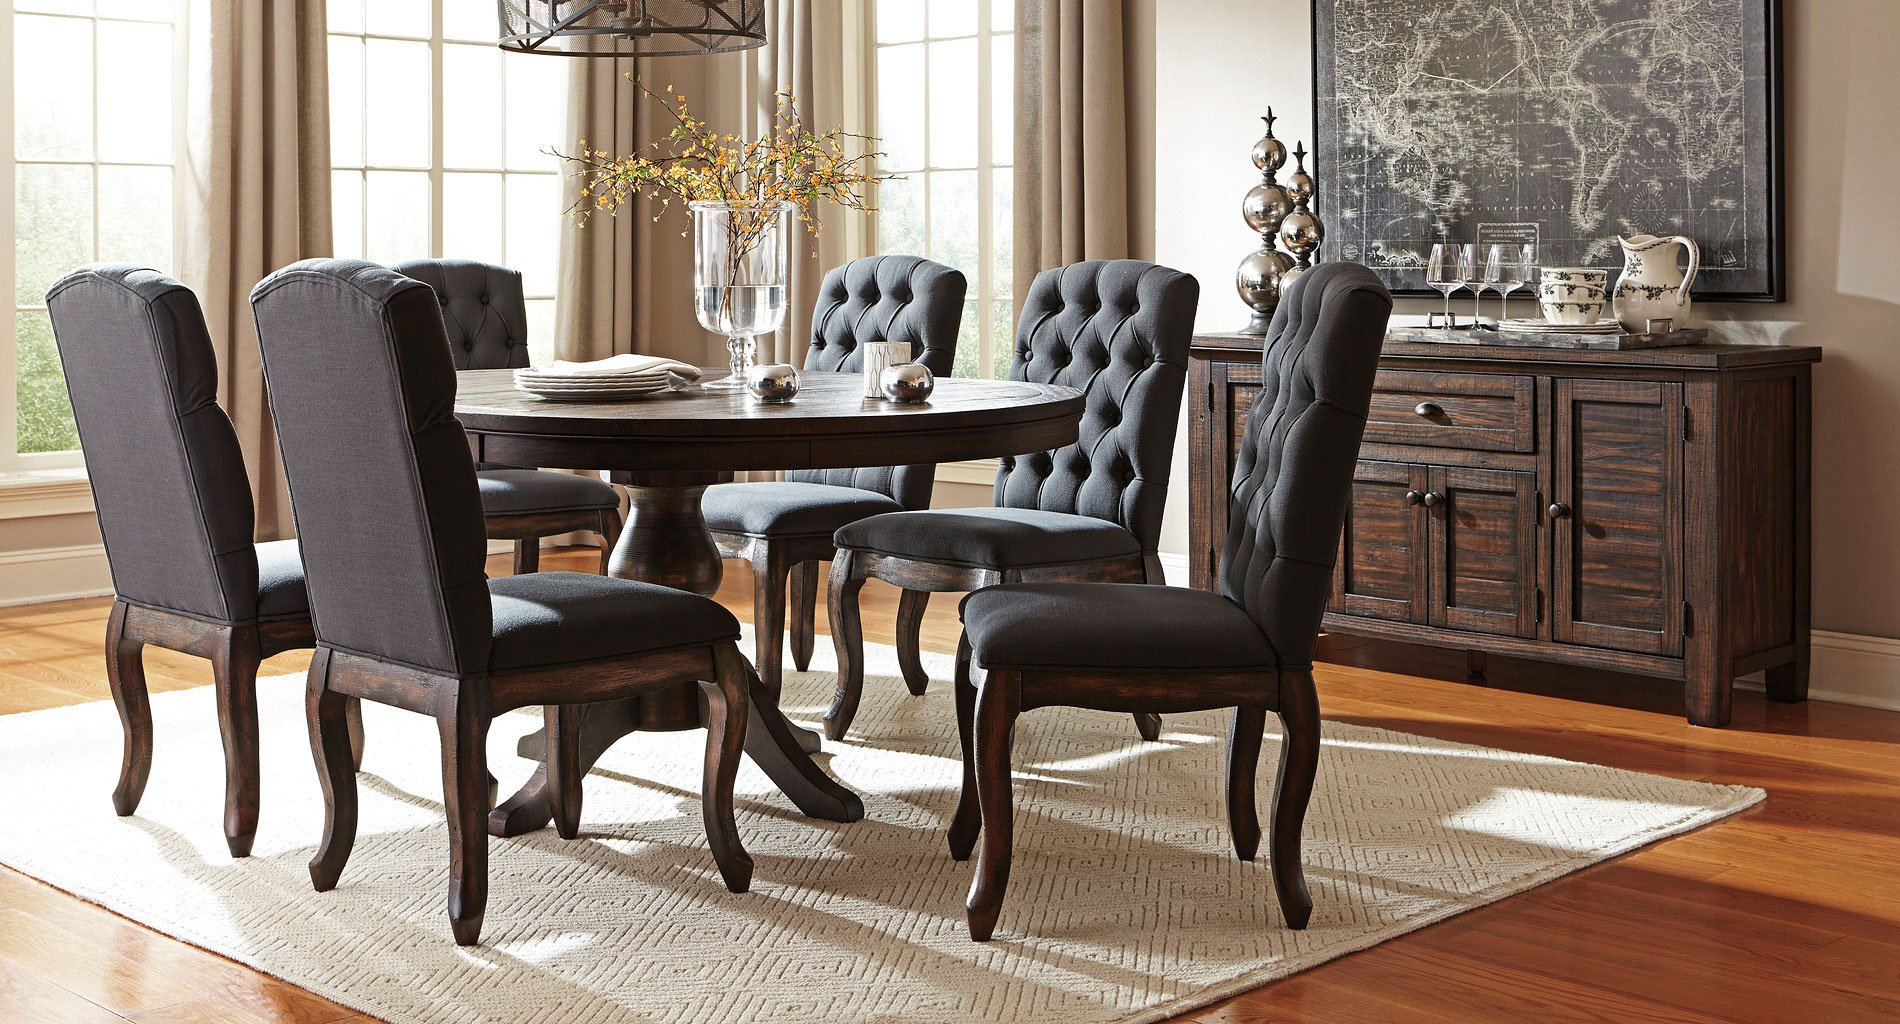 Trudell Round Dining Set W Upholstered Chairs By Signature Design By Ashley 1 Review S